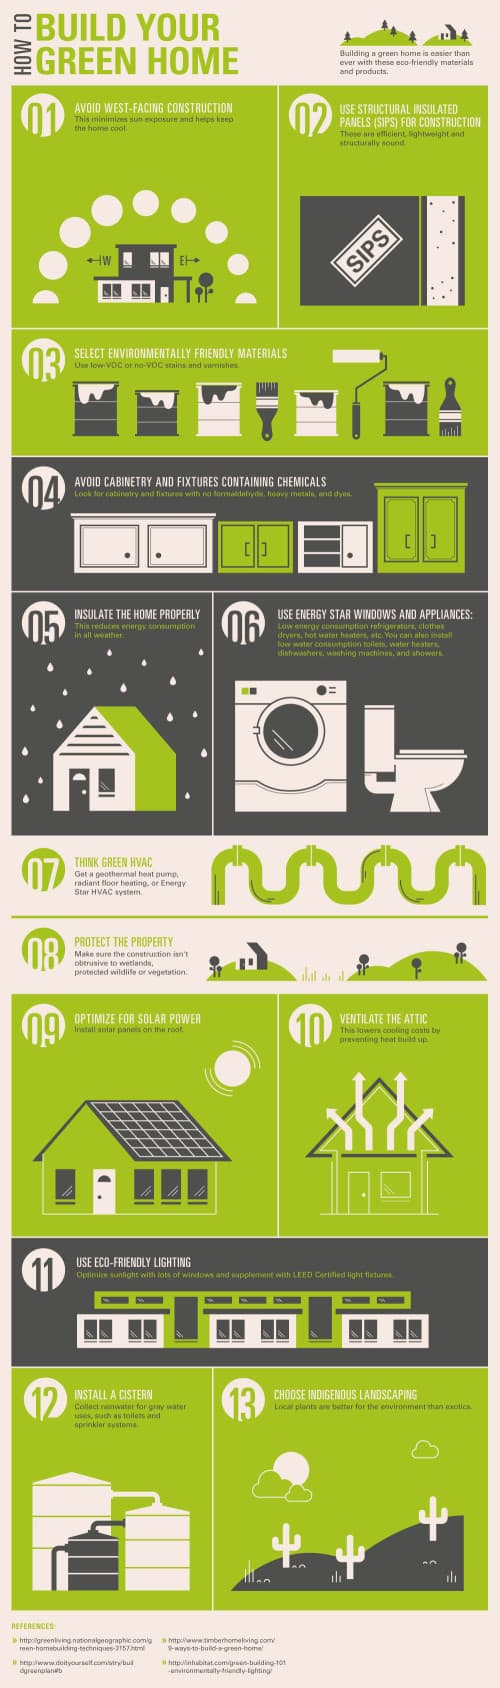 13 tips for building a green home infographic green home gnome